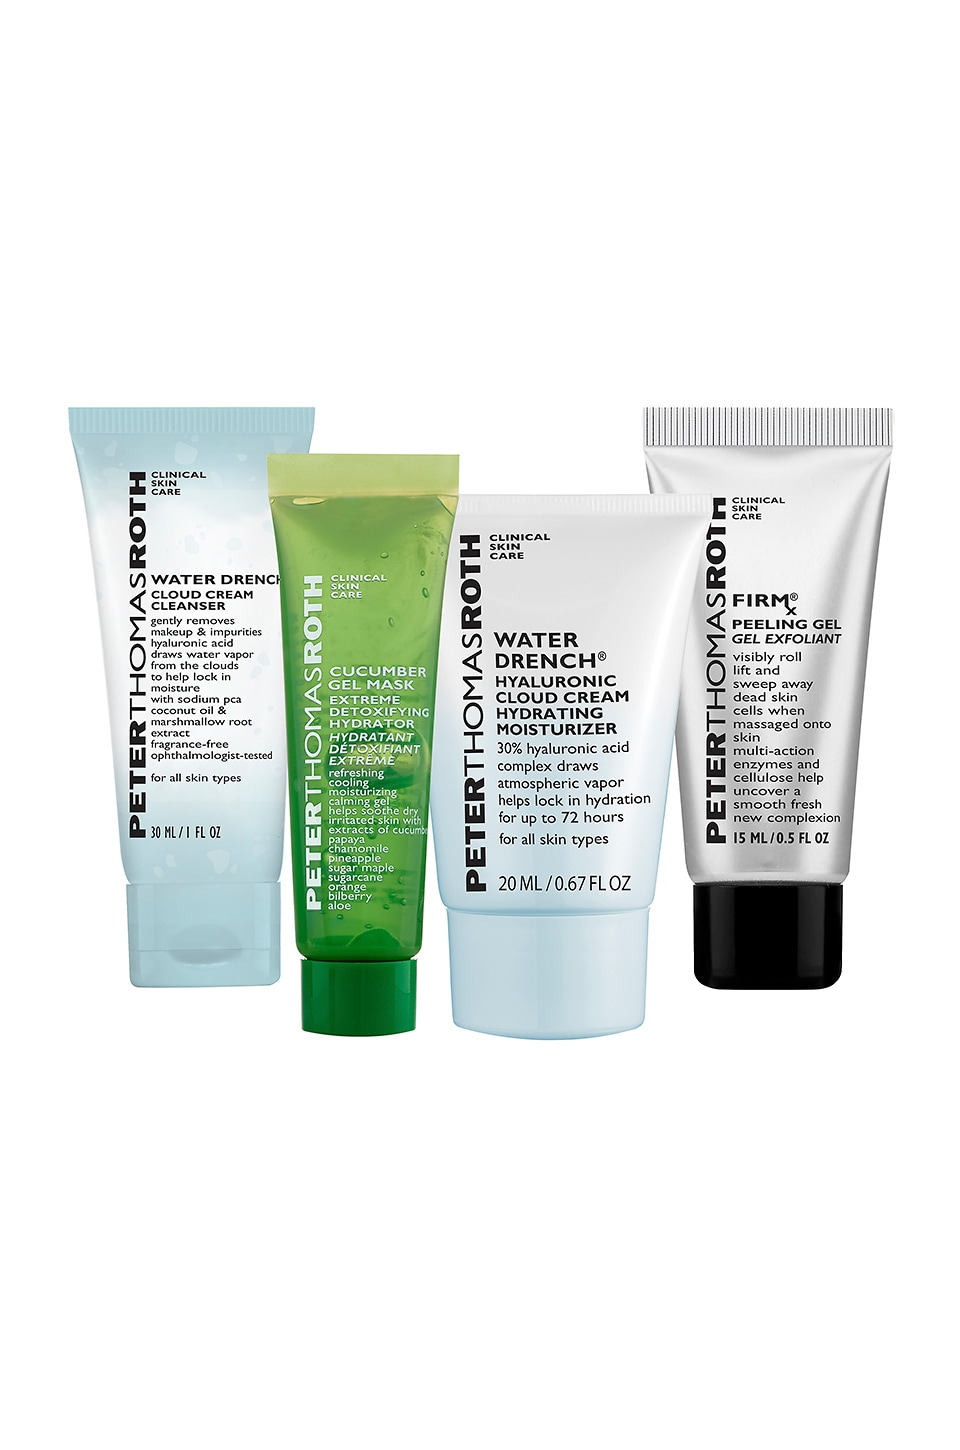 Peter Thomas Roth Jet, Set, Facial